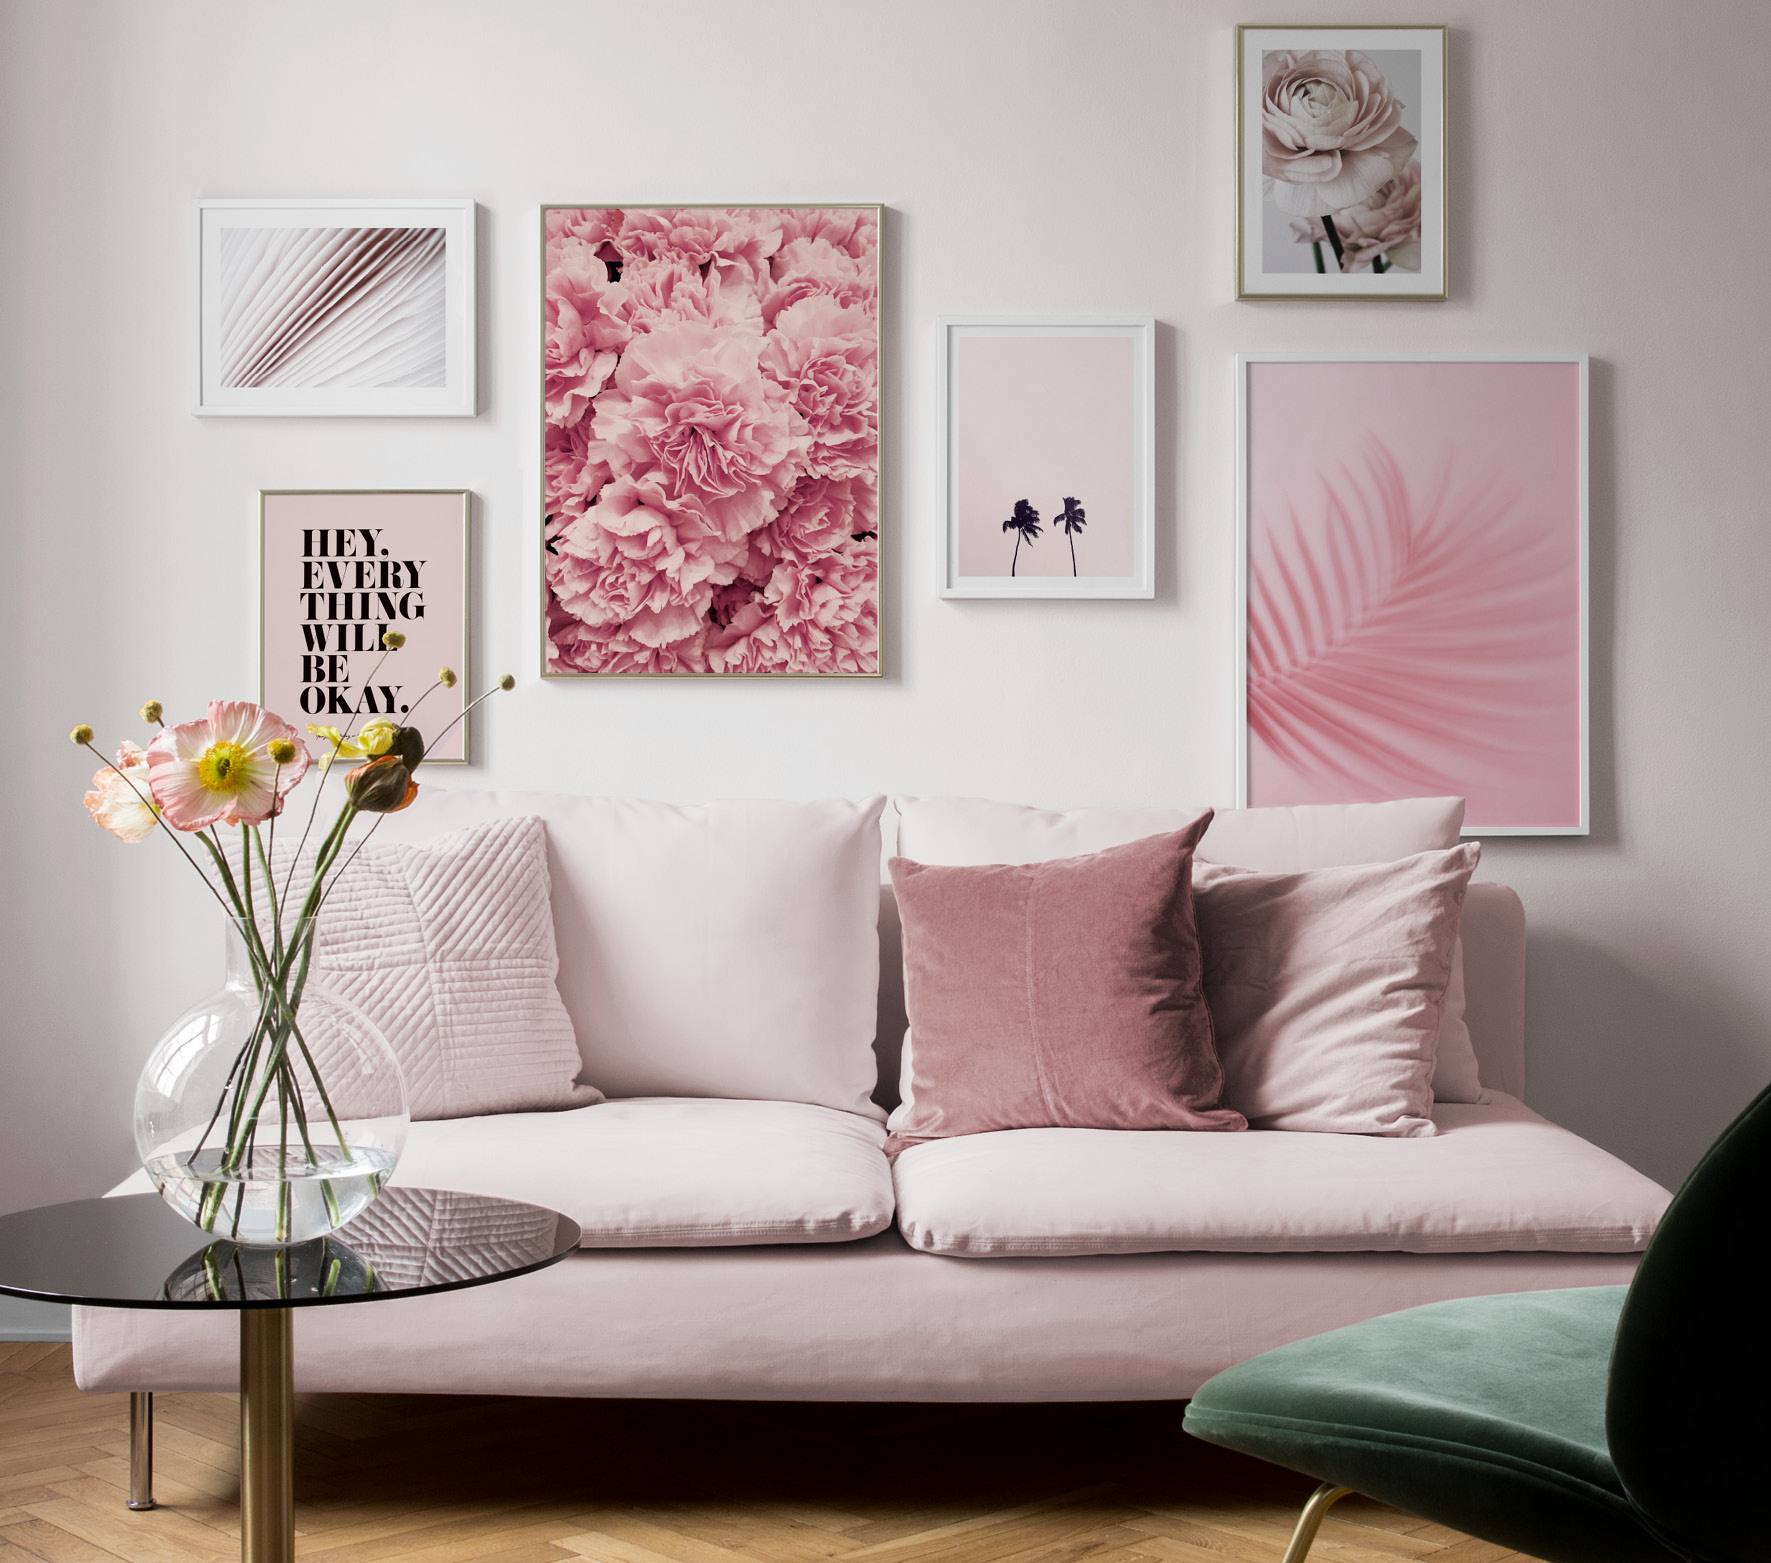 Living Room As Art Gallery: Picture Wall Inspiration For Living Room